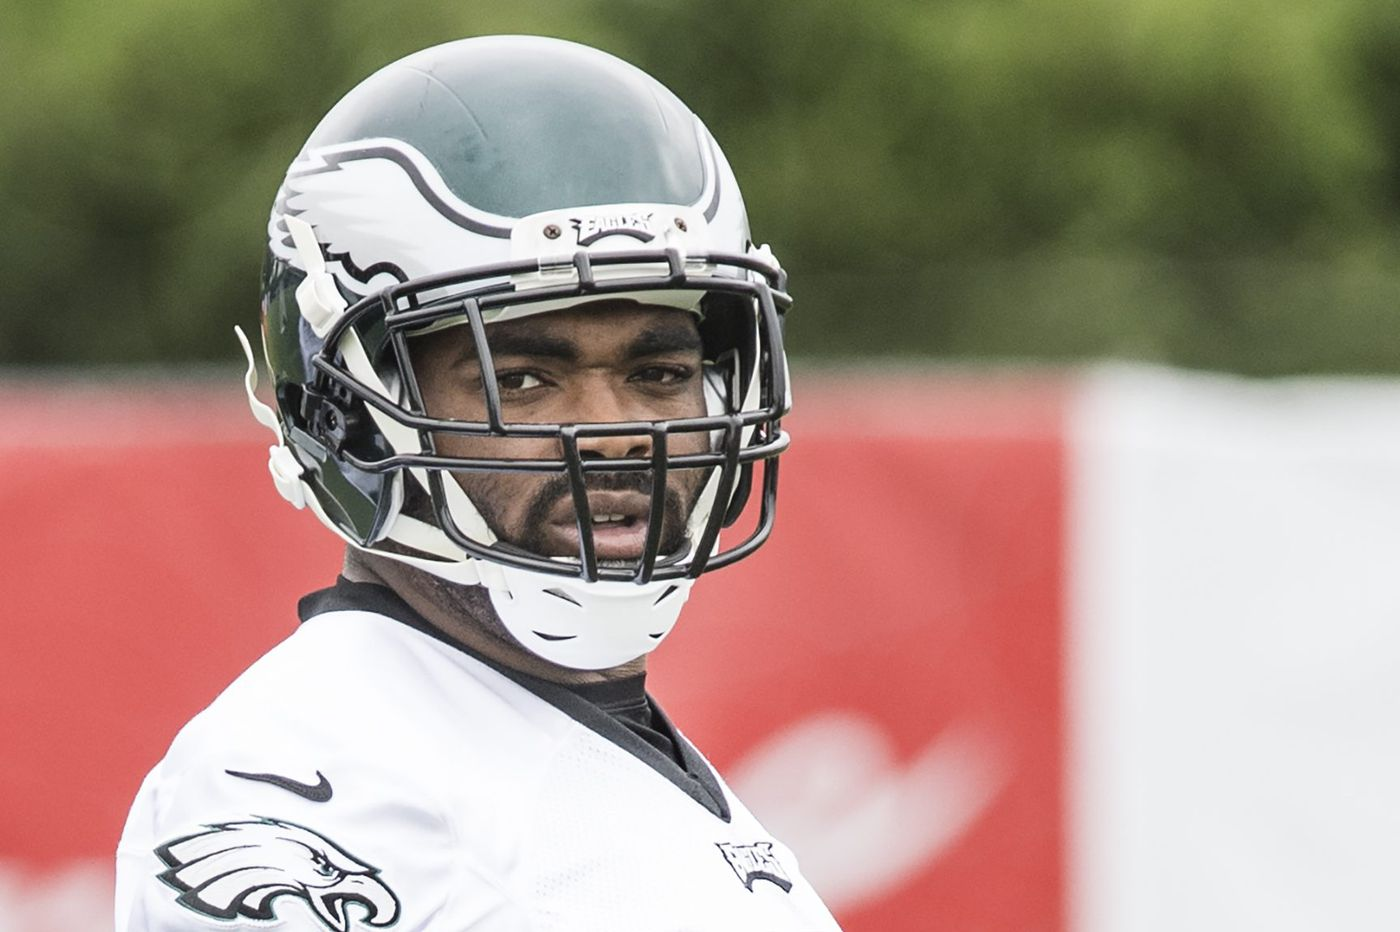 Eagles' Brandon Graham, after being activated from PUP list, is trying to make up for lost preseason time